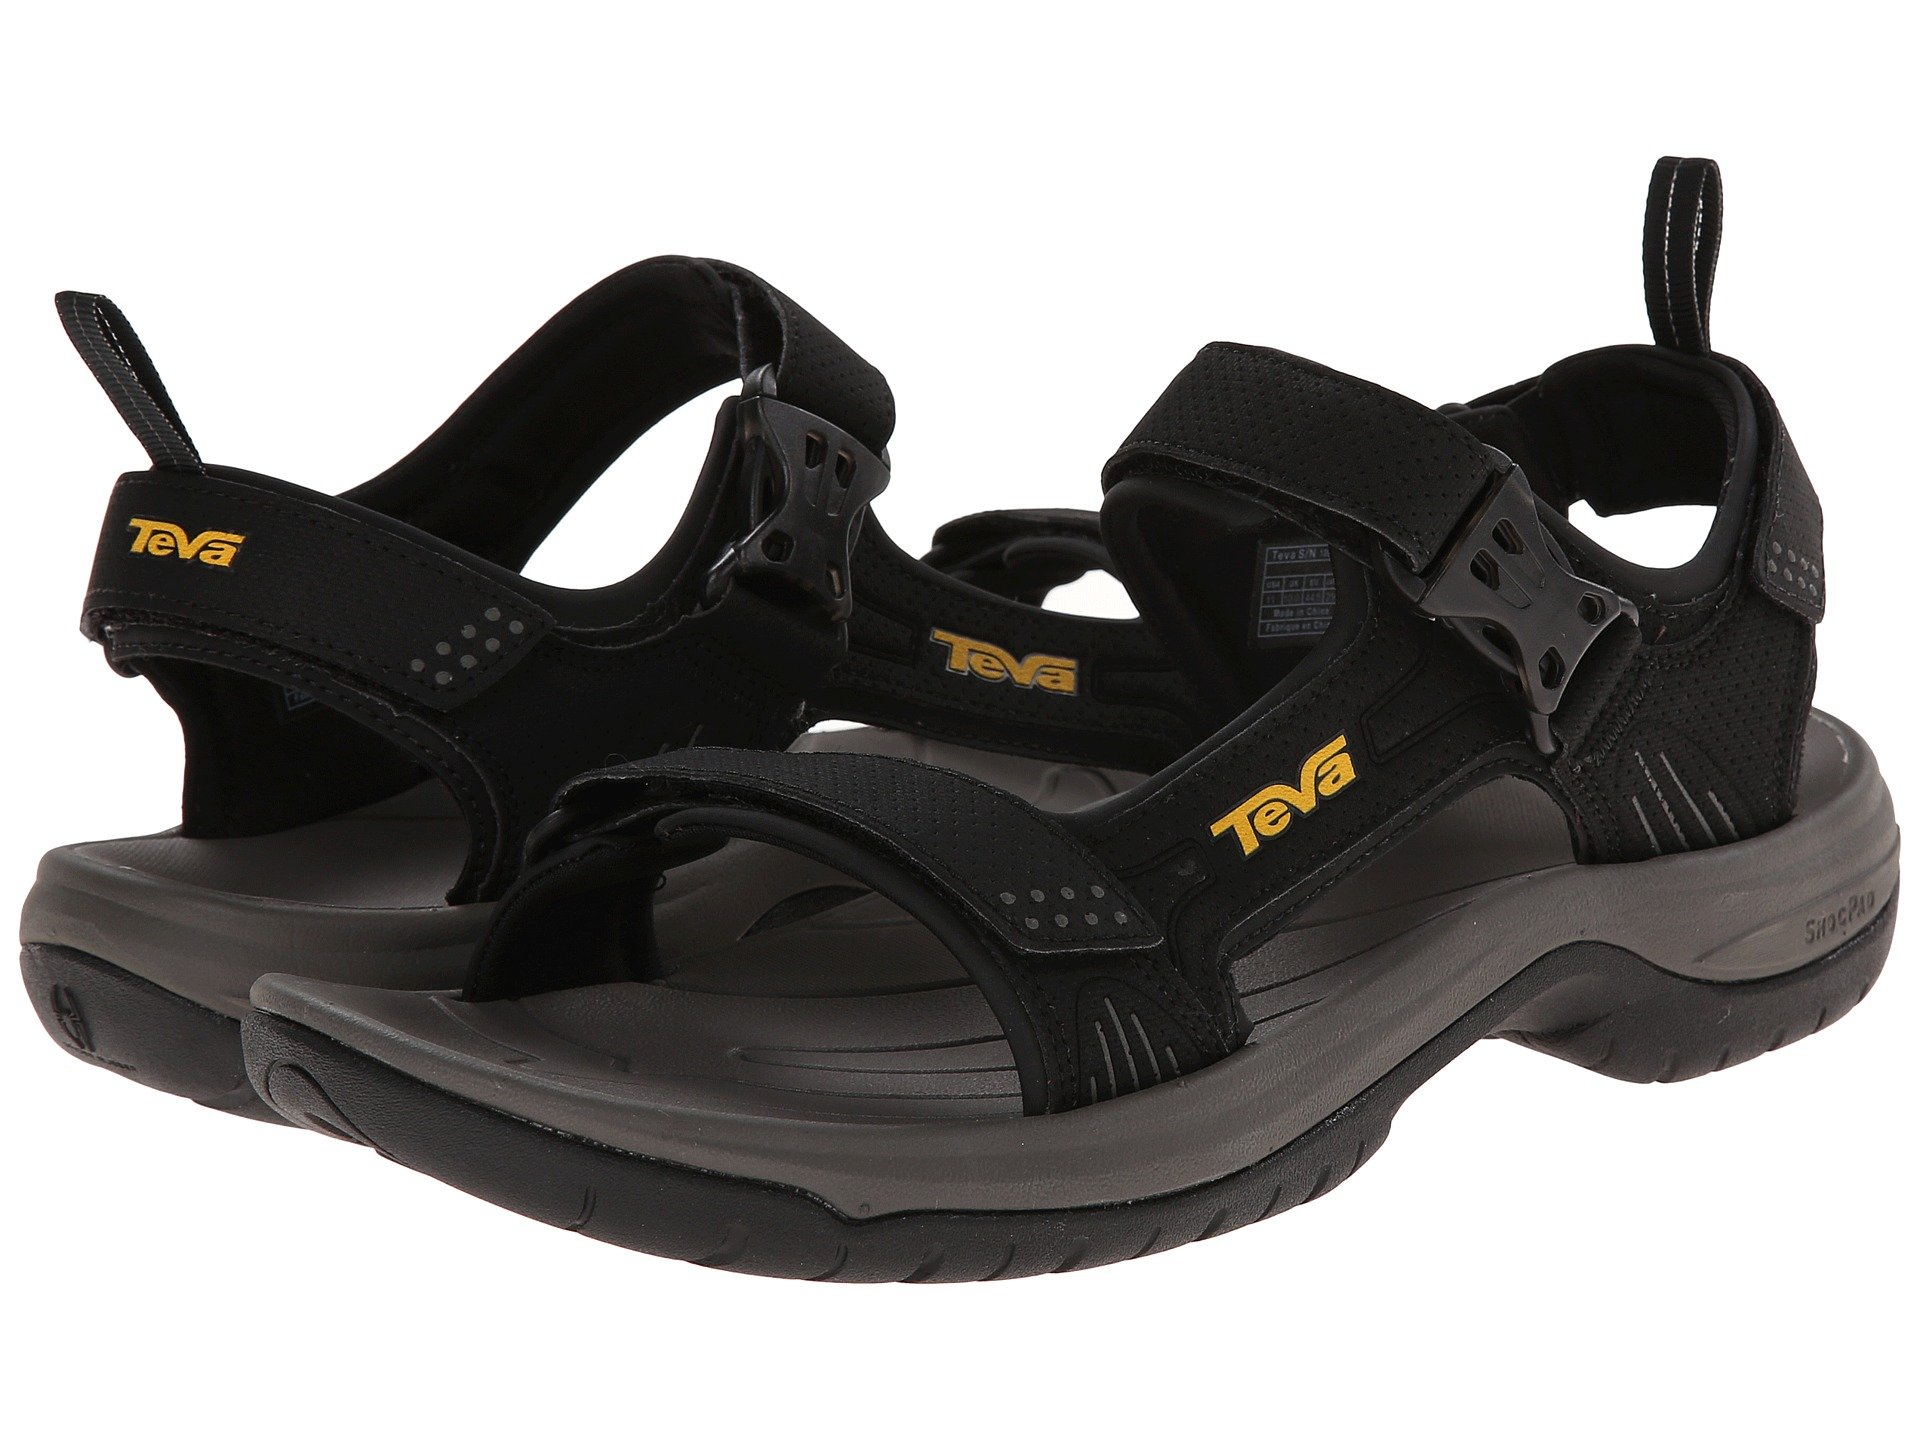 32db4a46d1fb9 Men s Teva Sandals + FREE SHIPPING